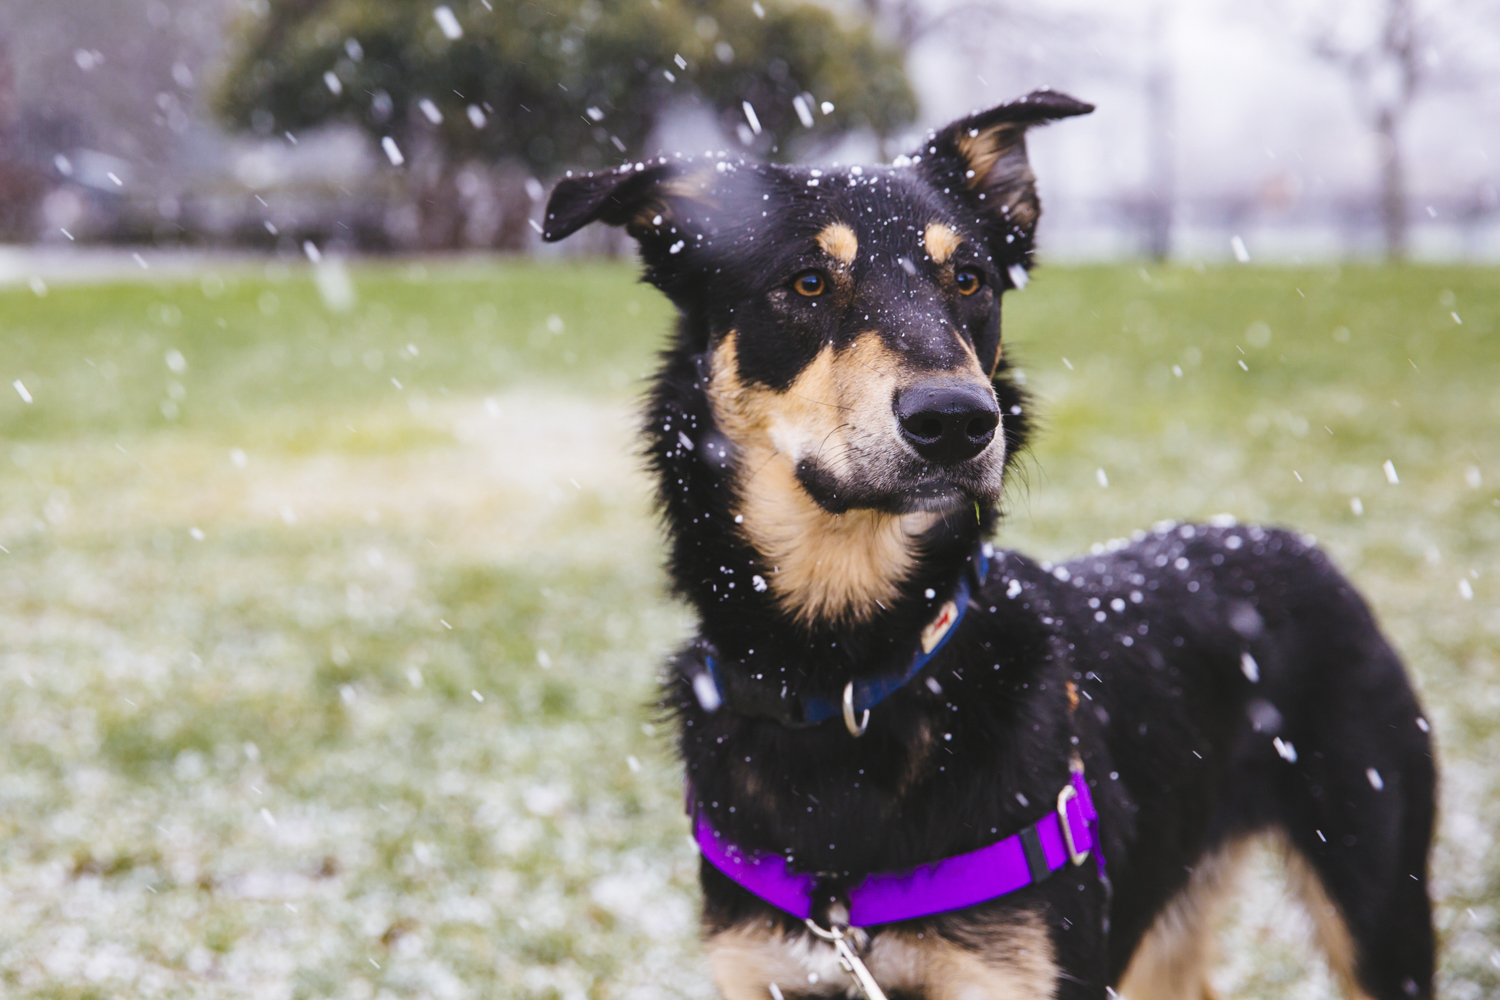 LOOK AT DIS BOY! Finn and Sunny, our fearless RUFFined photog, braved the bizarre spring hail storms for this shoot! Finn is a 13-month-old Australian Shepherd/Lab mix. Finn made the journey from the country side of Yelm to the big city lights of Seattle. Finn is a simple boy who likes running, snuggling, fetch, cheese and parties. He dislikes vacuums, being left out and leashes. The Seattle RUFFined Spotlight is a weekly profile of local pets living and loving life in the PNW. If you or someone you know has a pet you'd like featured, email us at hello@seattlerefined.com or tag #SeattleRUFFined and your furbaby could be the next spotlighted! (Image: Sunita Martini / Seattle Refined).